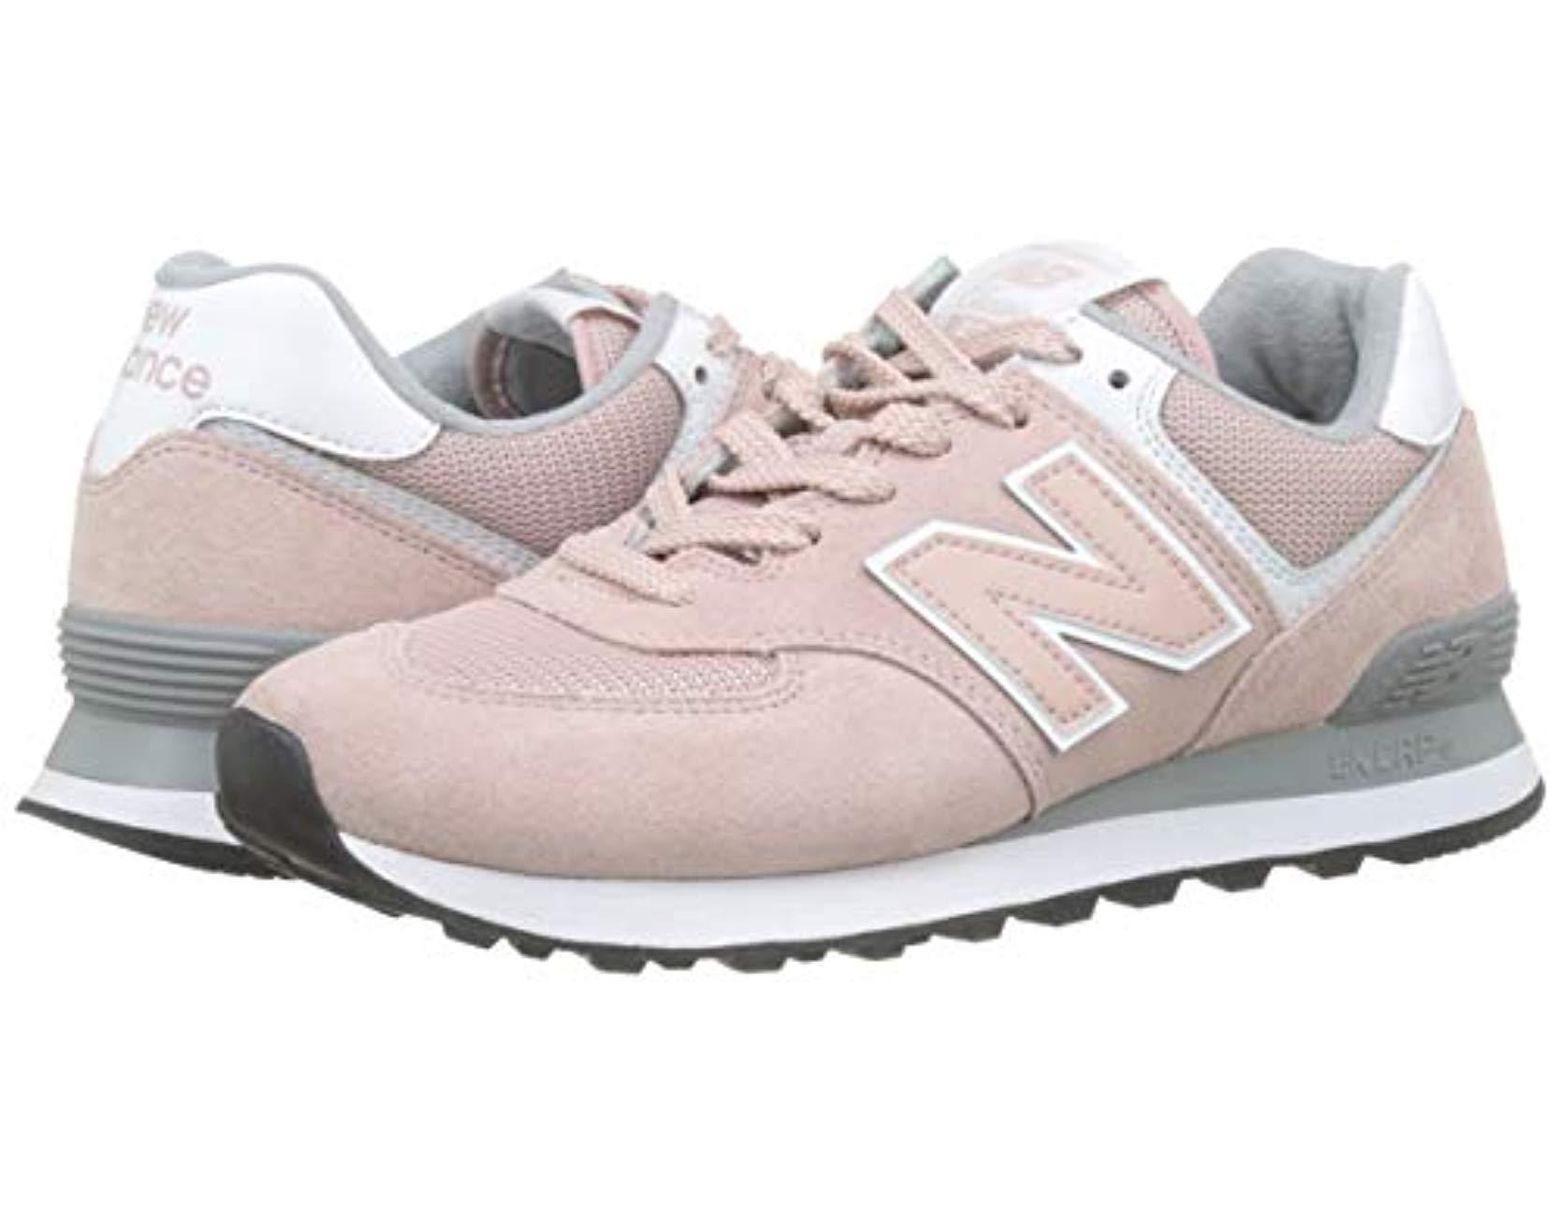 New Balance 574v2 Trainers in Pink Save 13% Lyst